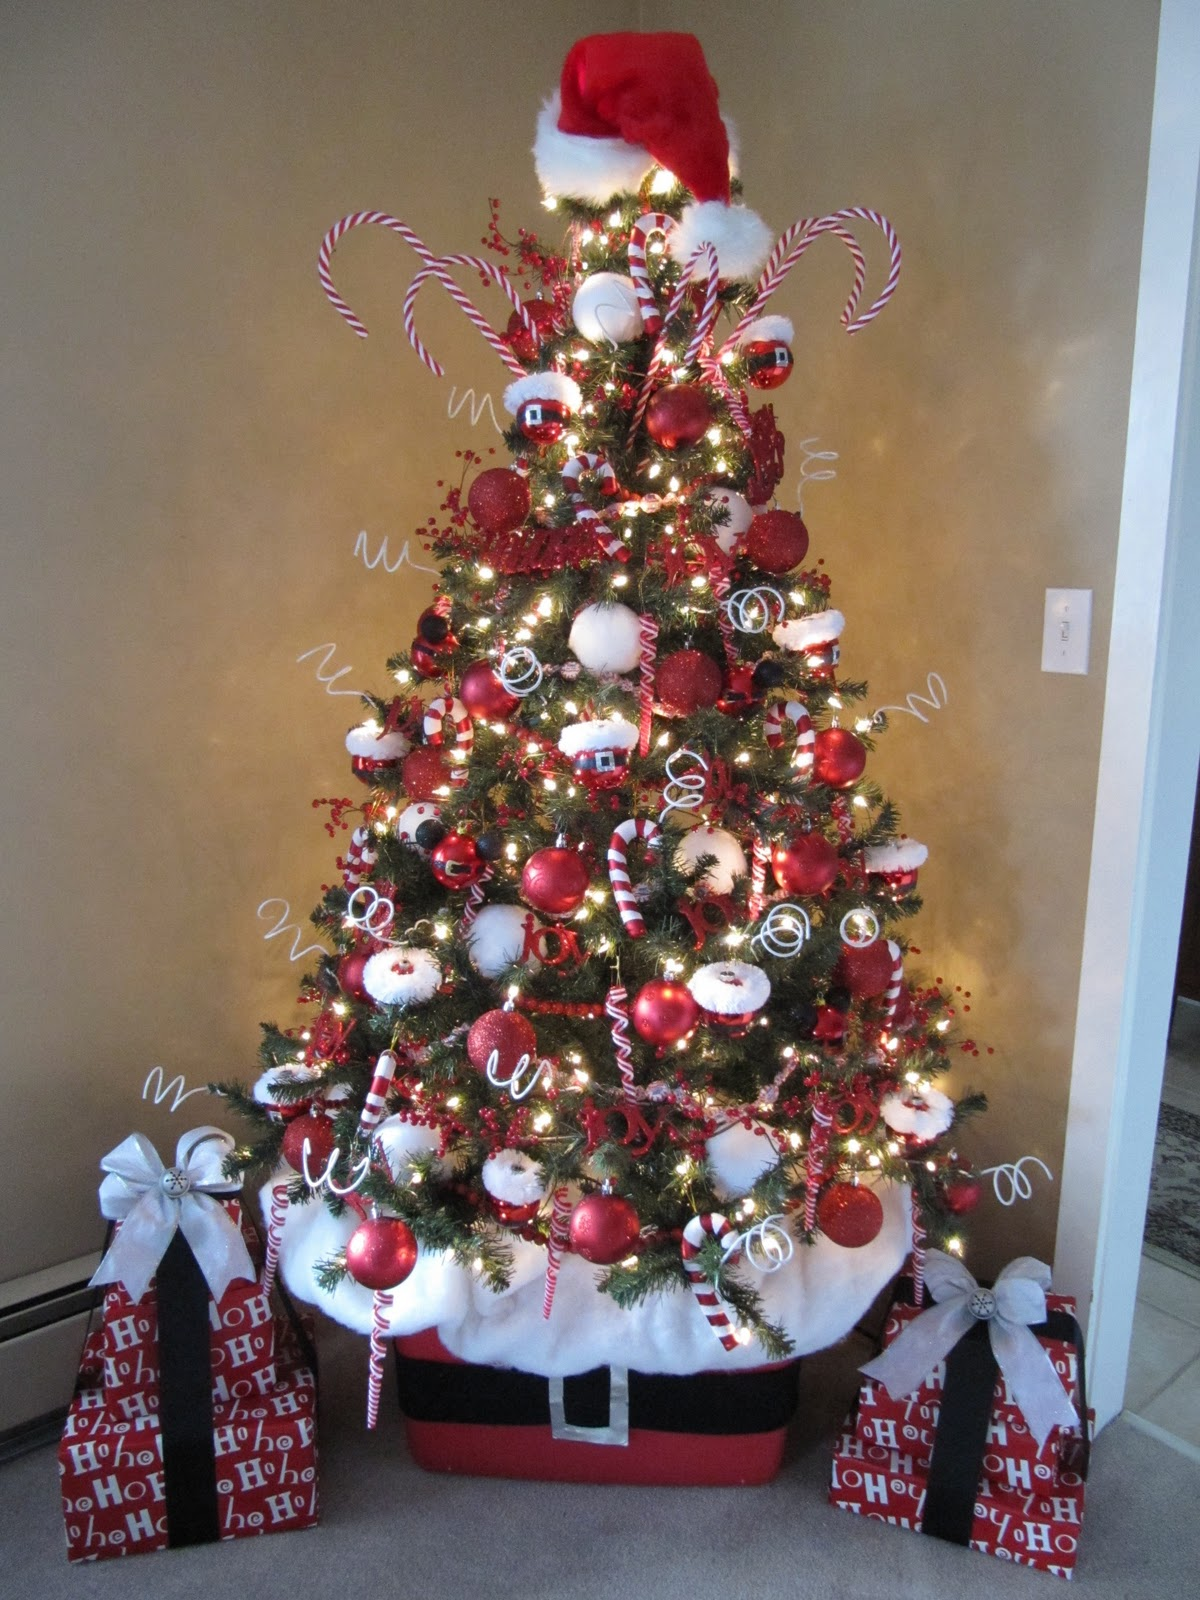 36. Classic Candy Canes - The 50 Best And Most Inspiring Christmas Tree Decoration Ideas For